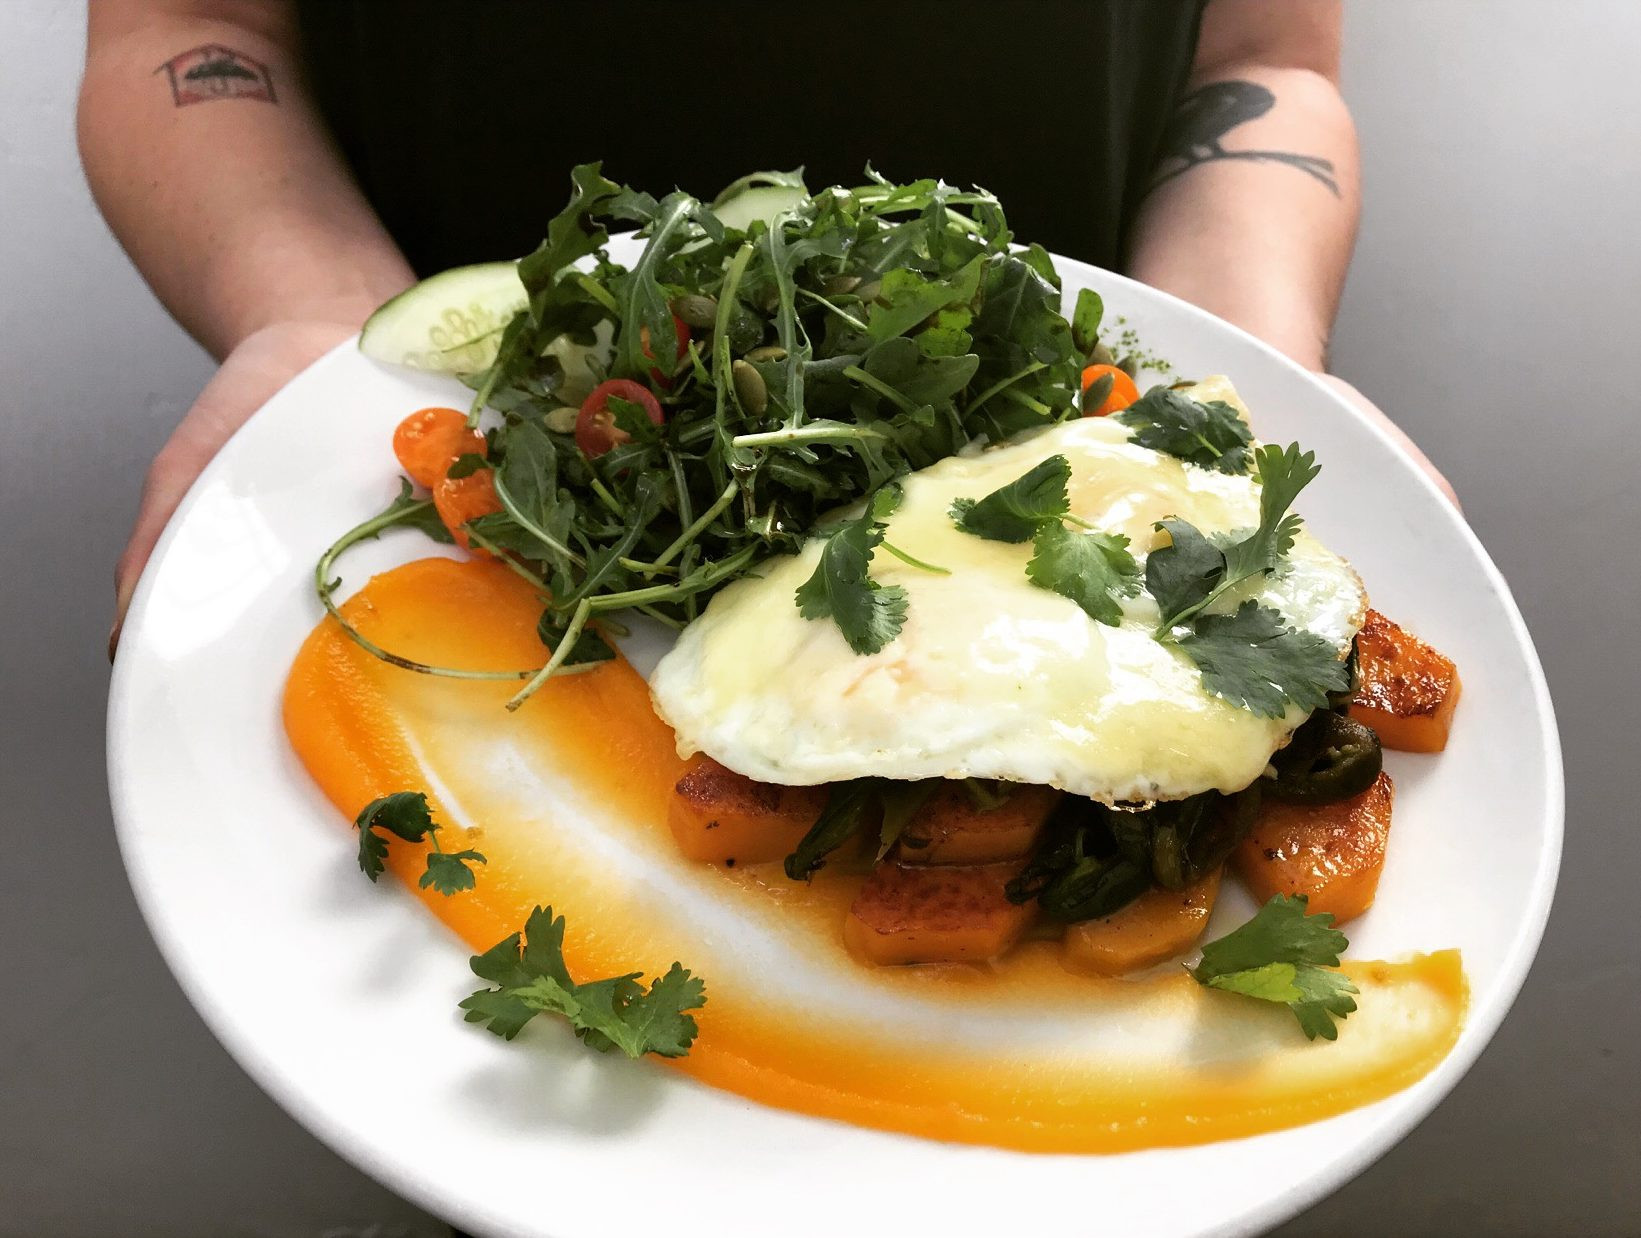 Healthy Breakfast Tucson  The ficial 41 Best Salads in Tucson 2017